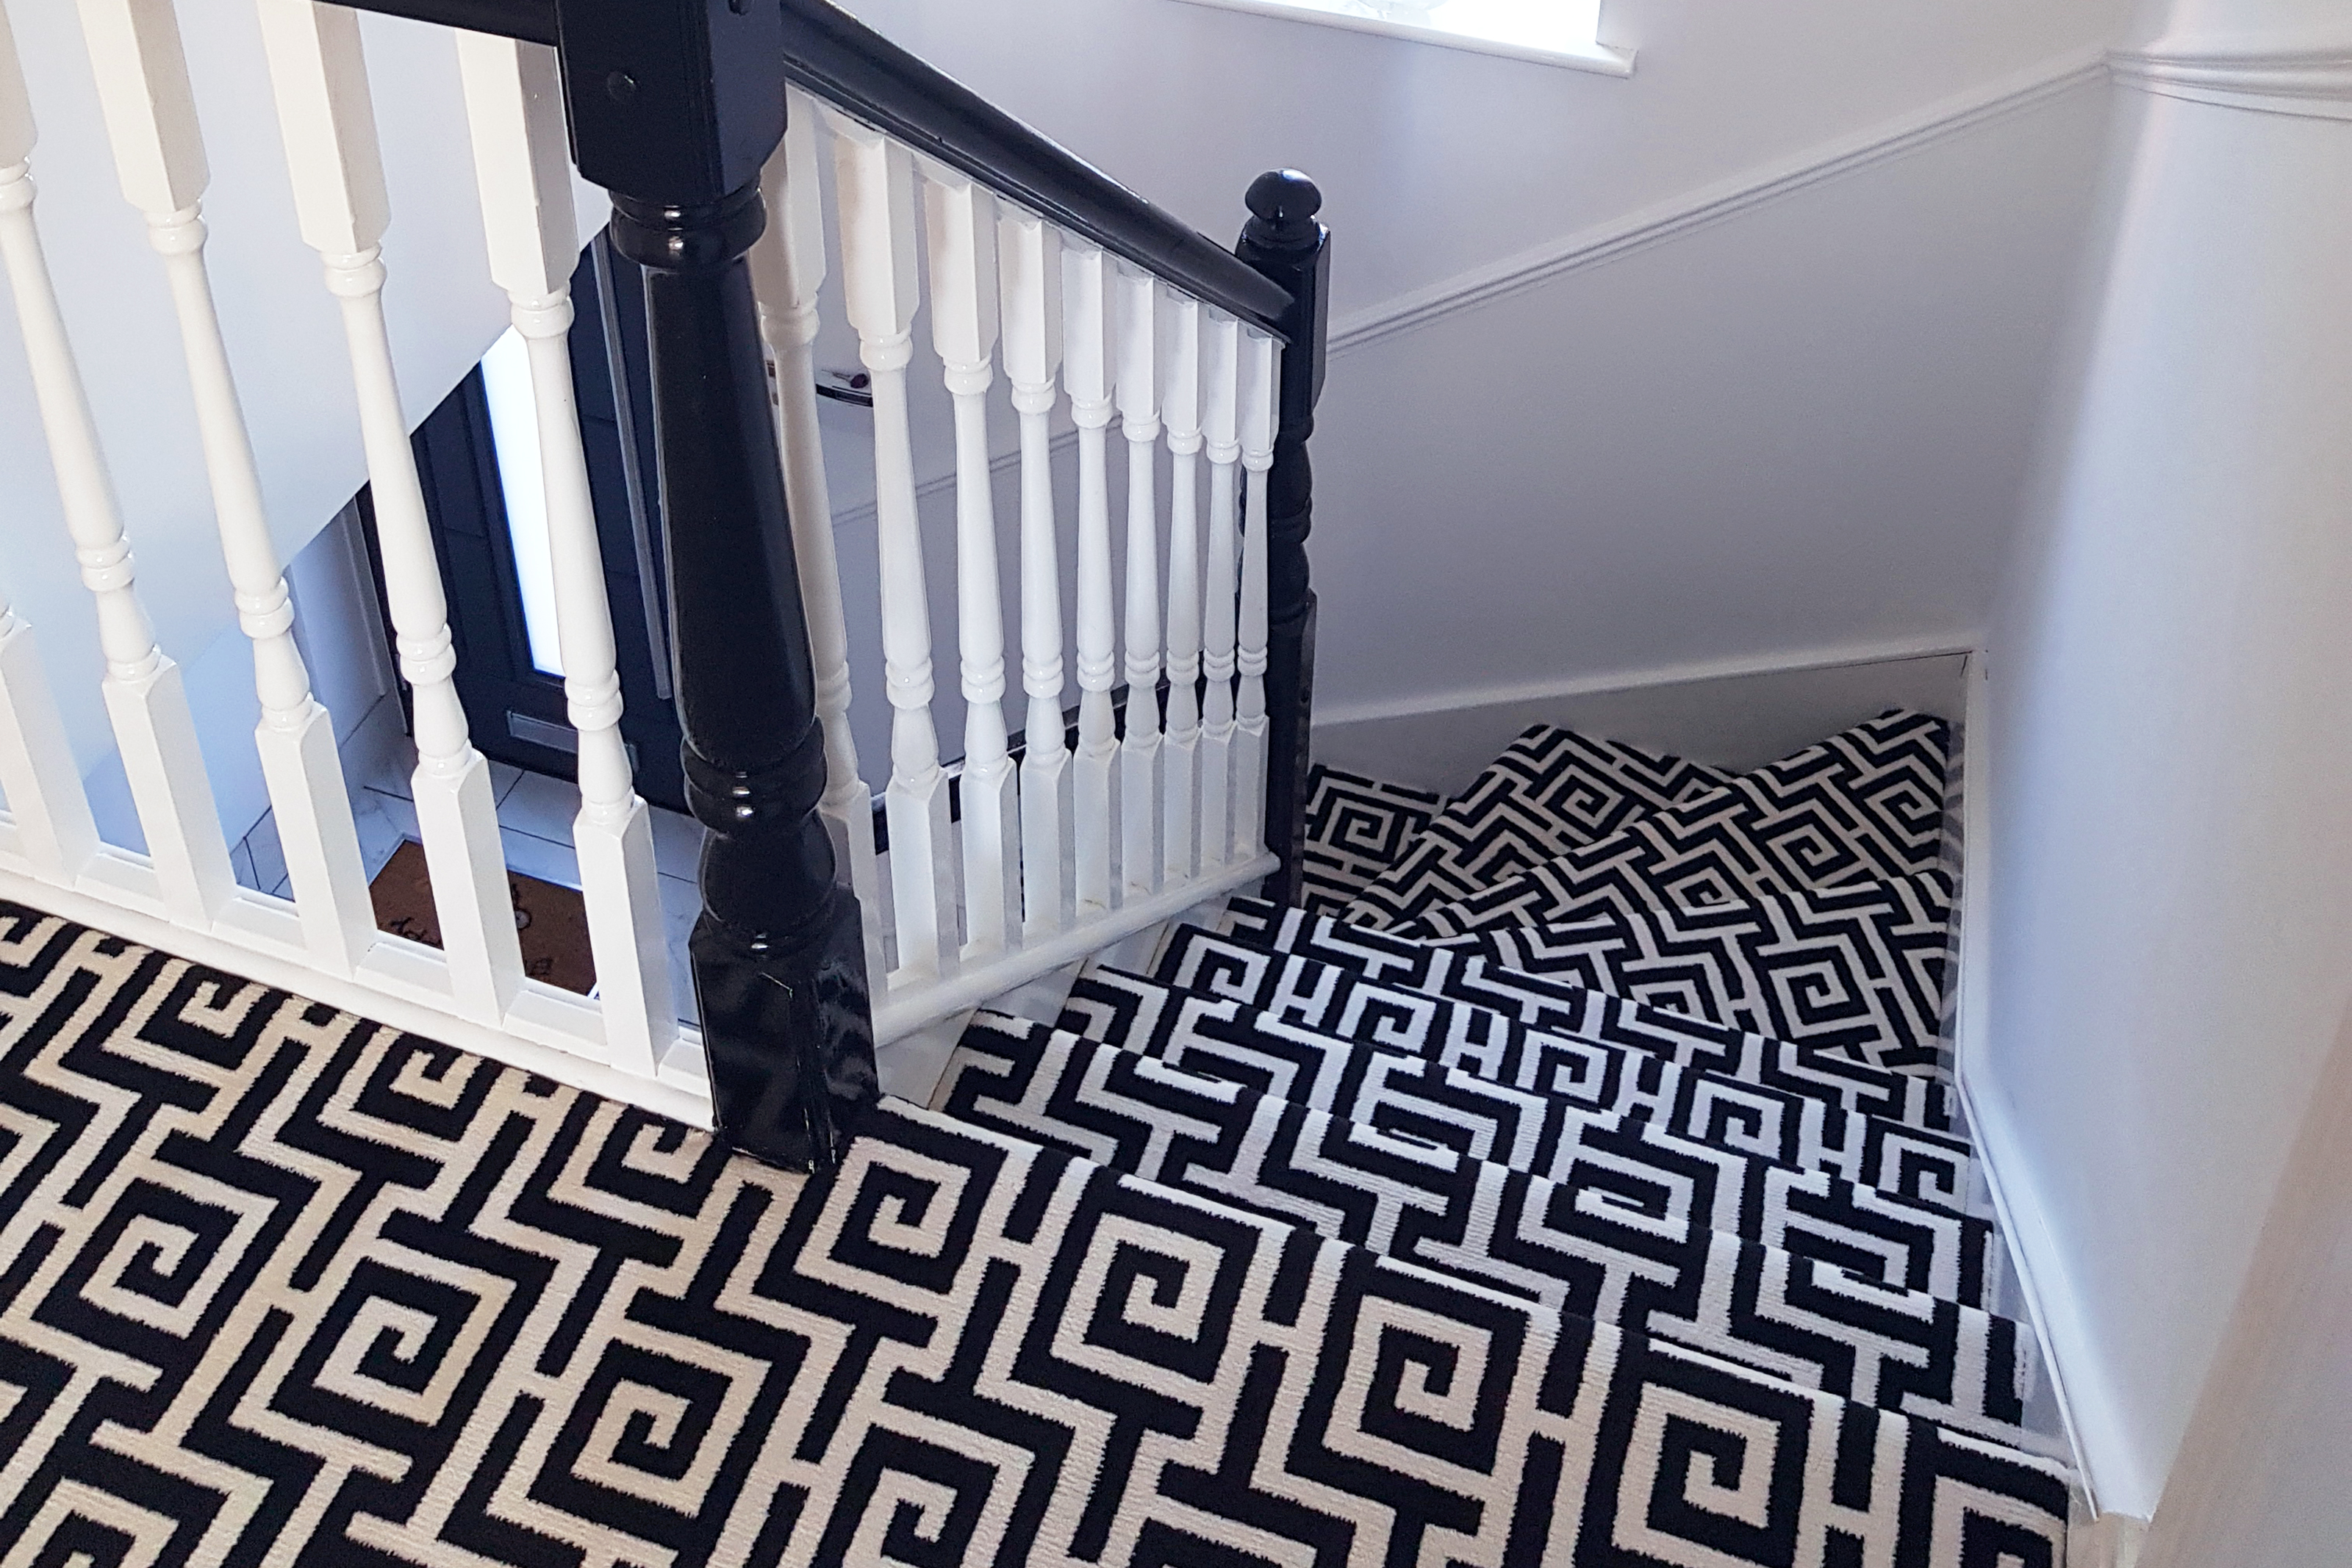 Spiral stairs covered in black and white geometric carpeting